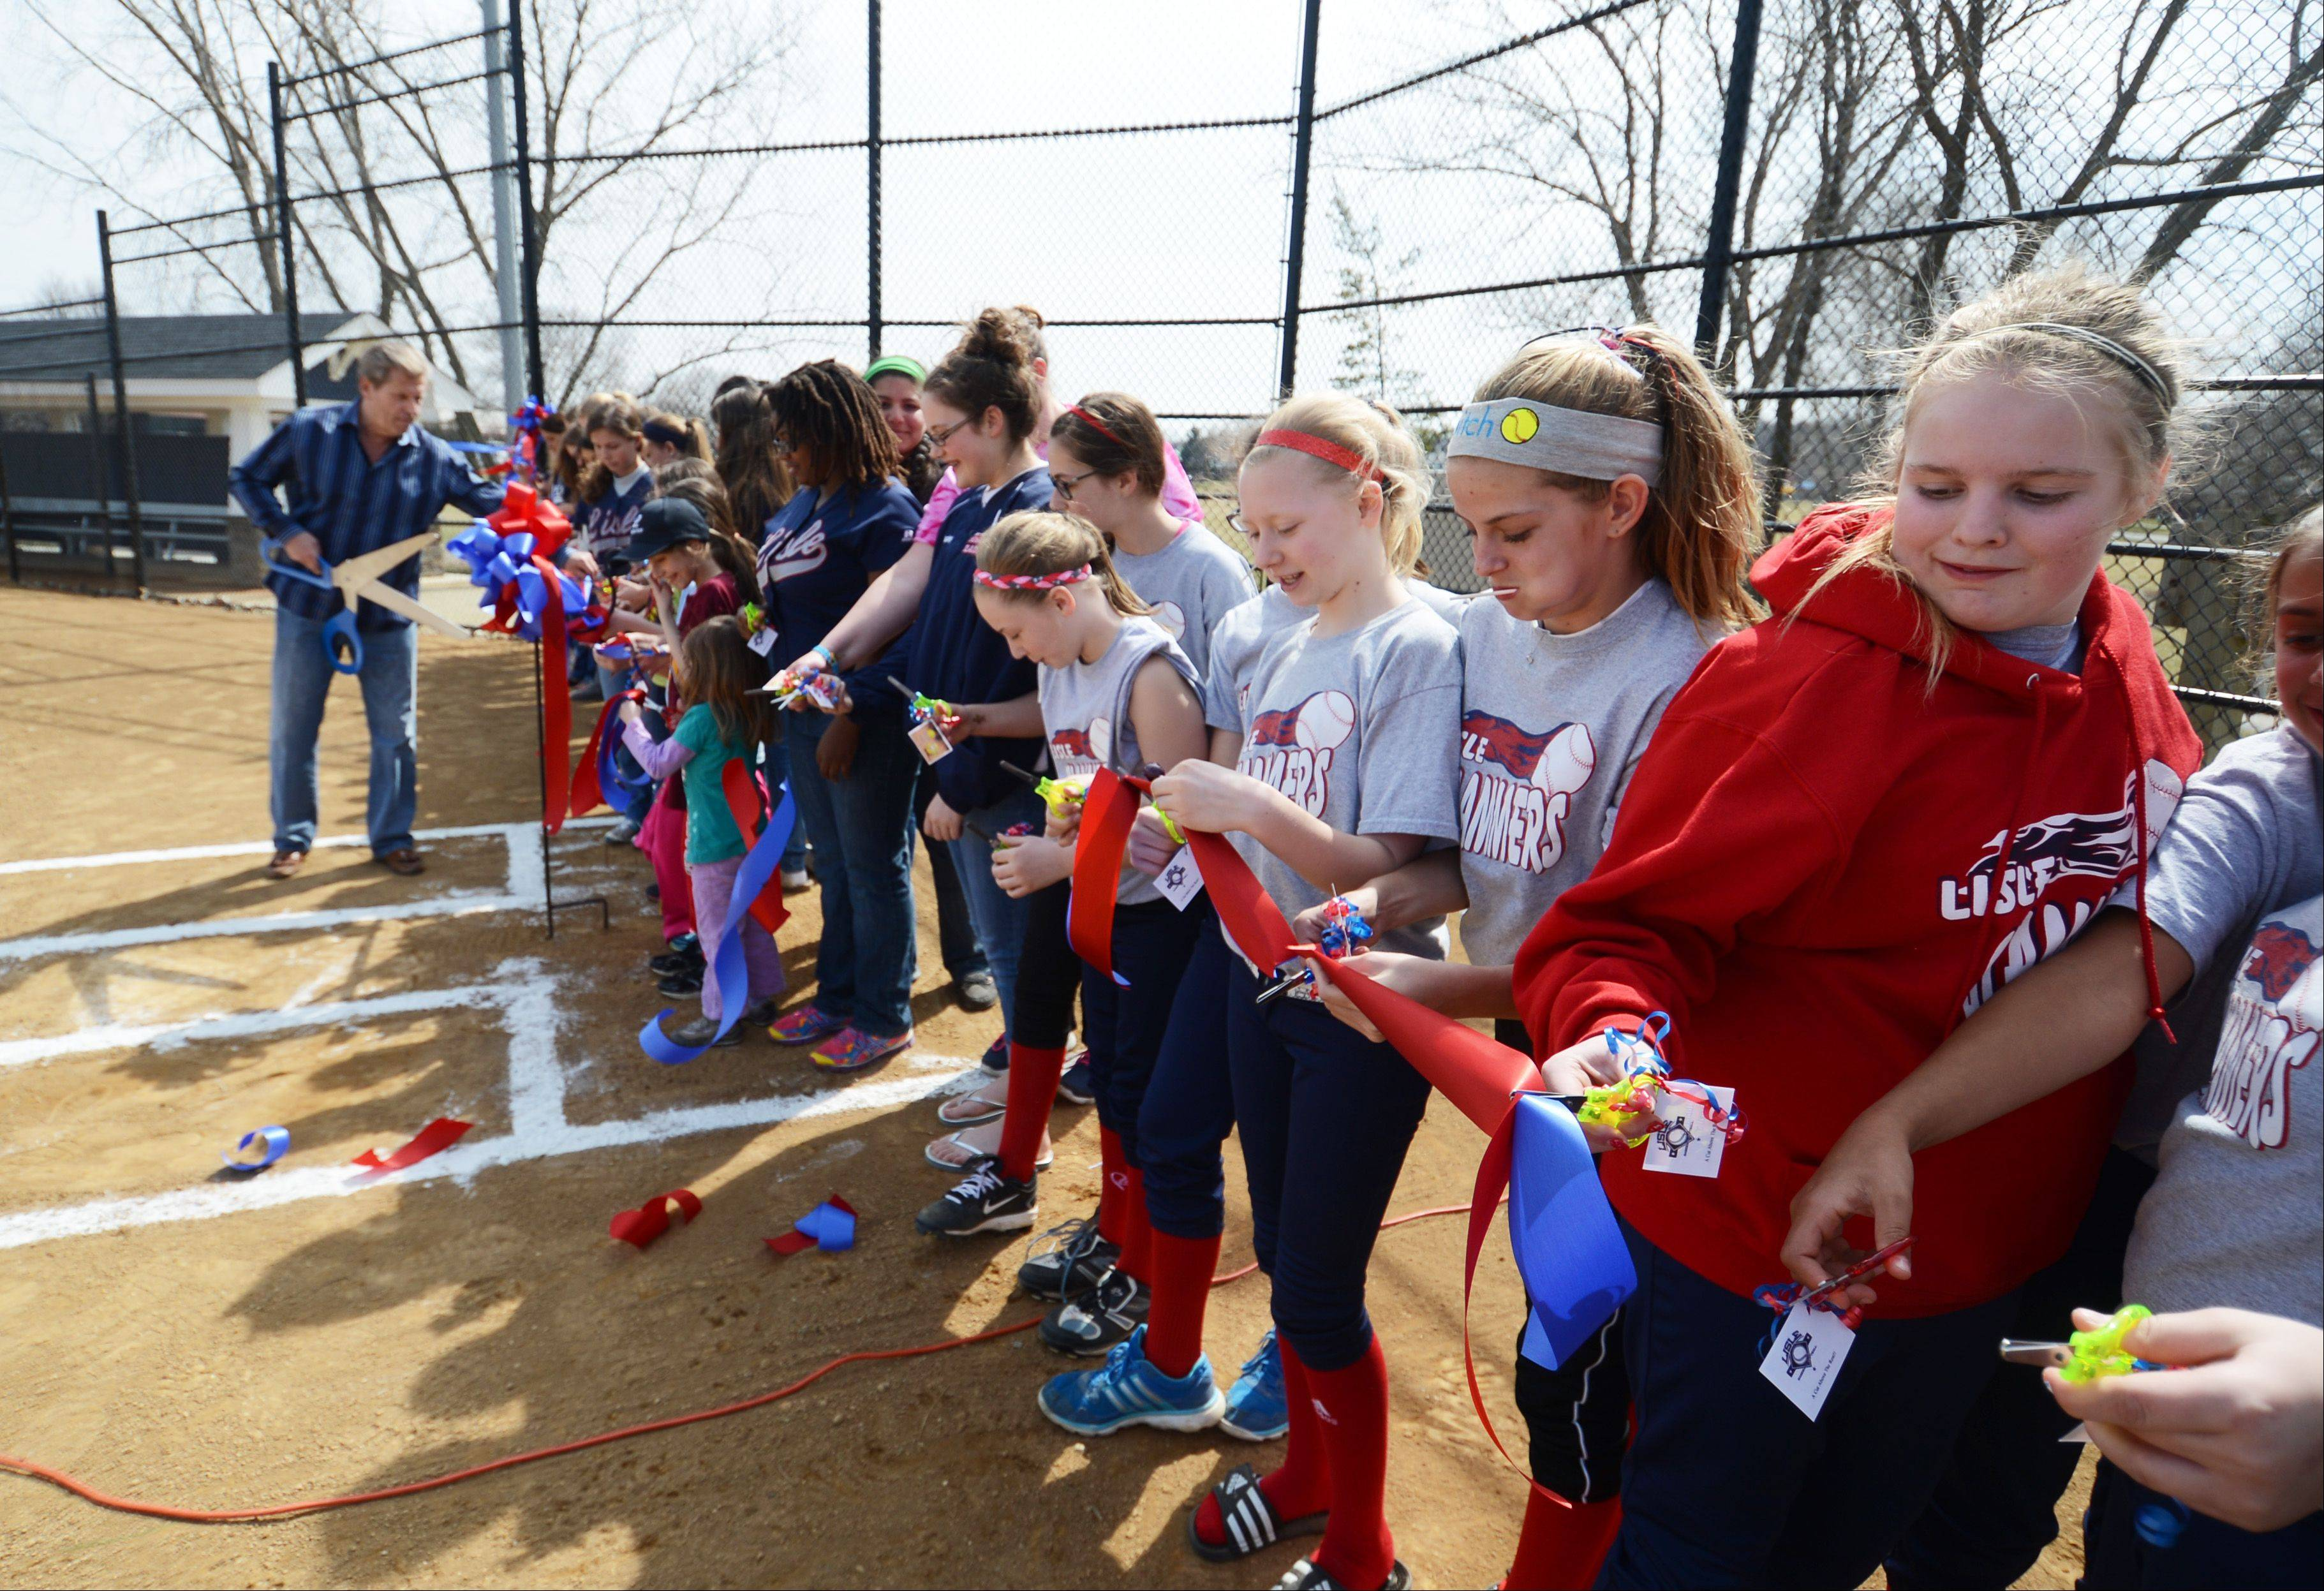 The Lisle Baseball Softball League dedicates their C5 softball field with a ribbon cutting Sunday in Community Park.